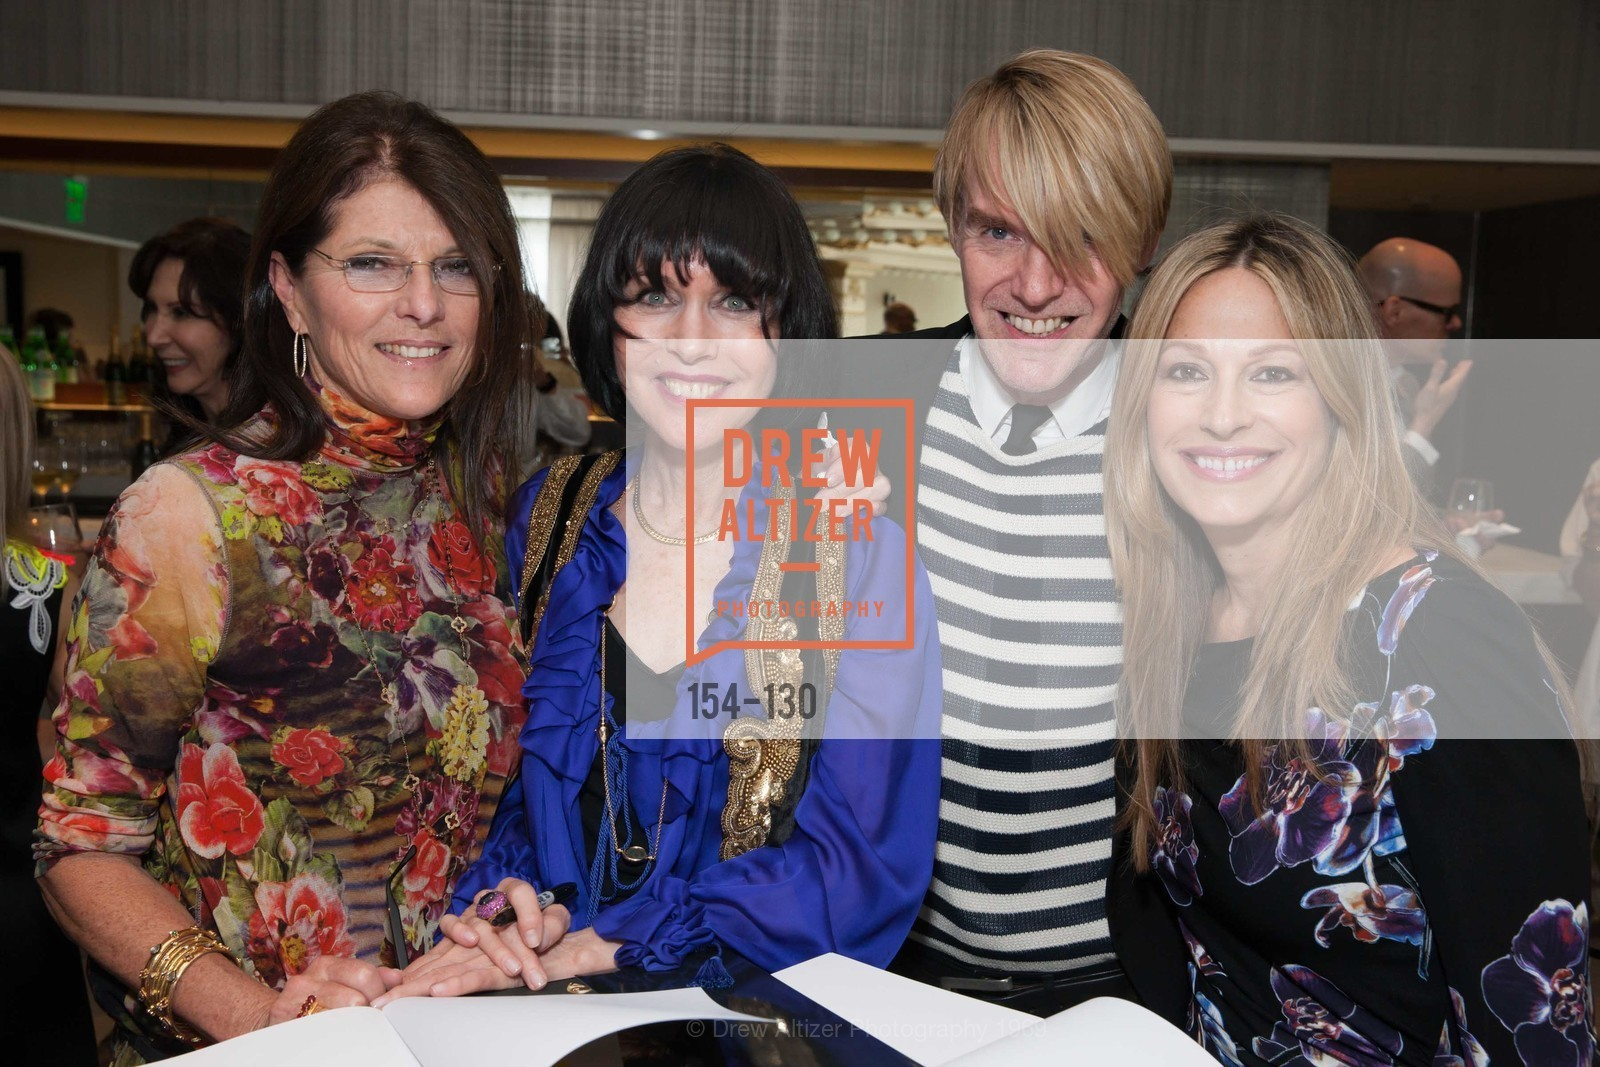 Lorrae Rominger, Christine Suppes, Ken Downing, Carolyne Zinko, Electric Fashion Book Signing with Christine Suppes & Ken Downing, Neiman Marcus, Rotunda, May 26th, 2015,Drew Altizer, Drew Altizer Photography, full-service event agency, private events, San Francisco photographer, photographer California